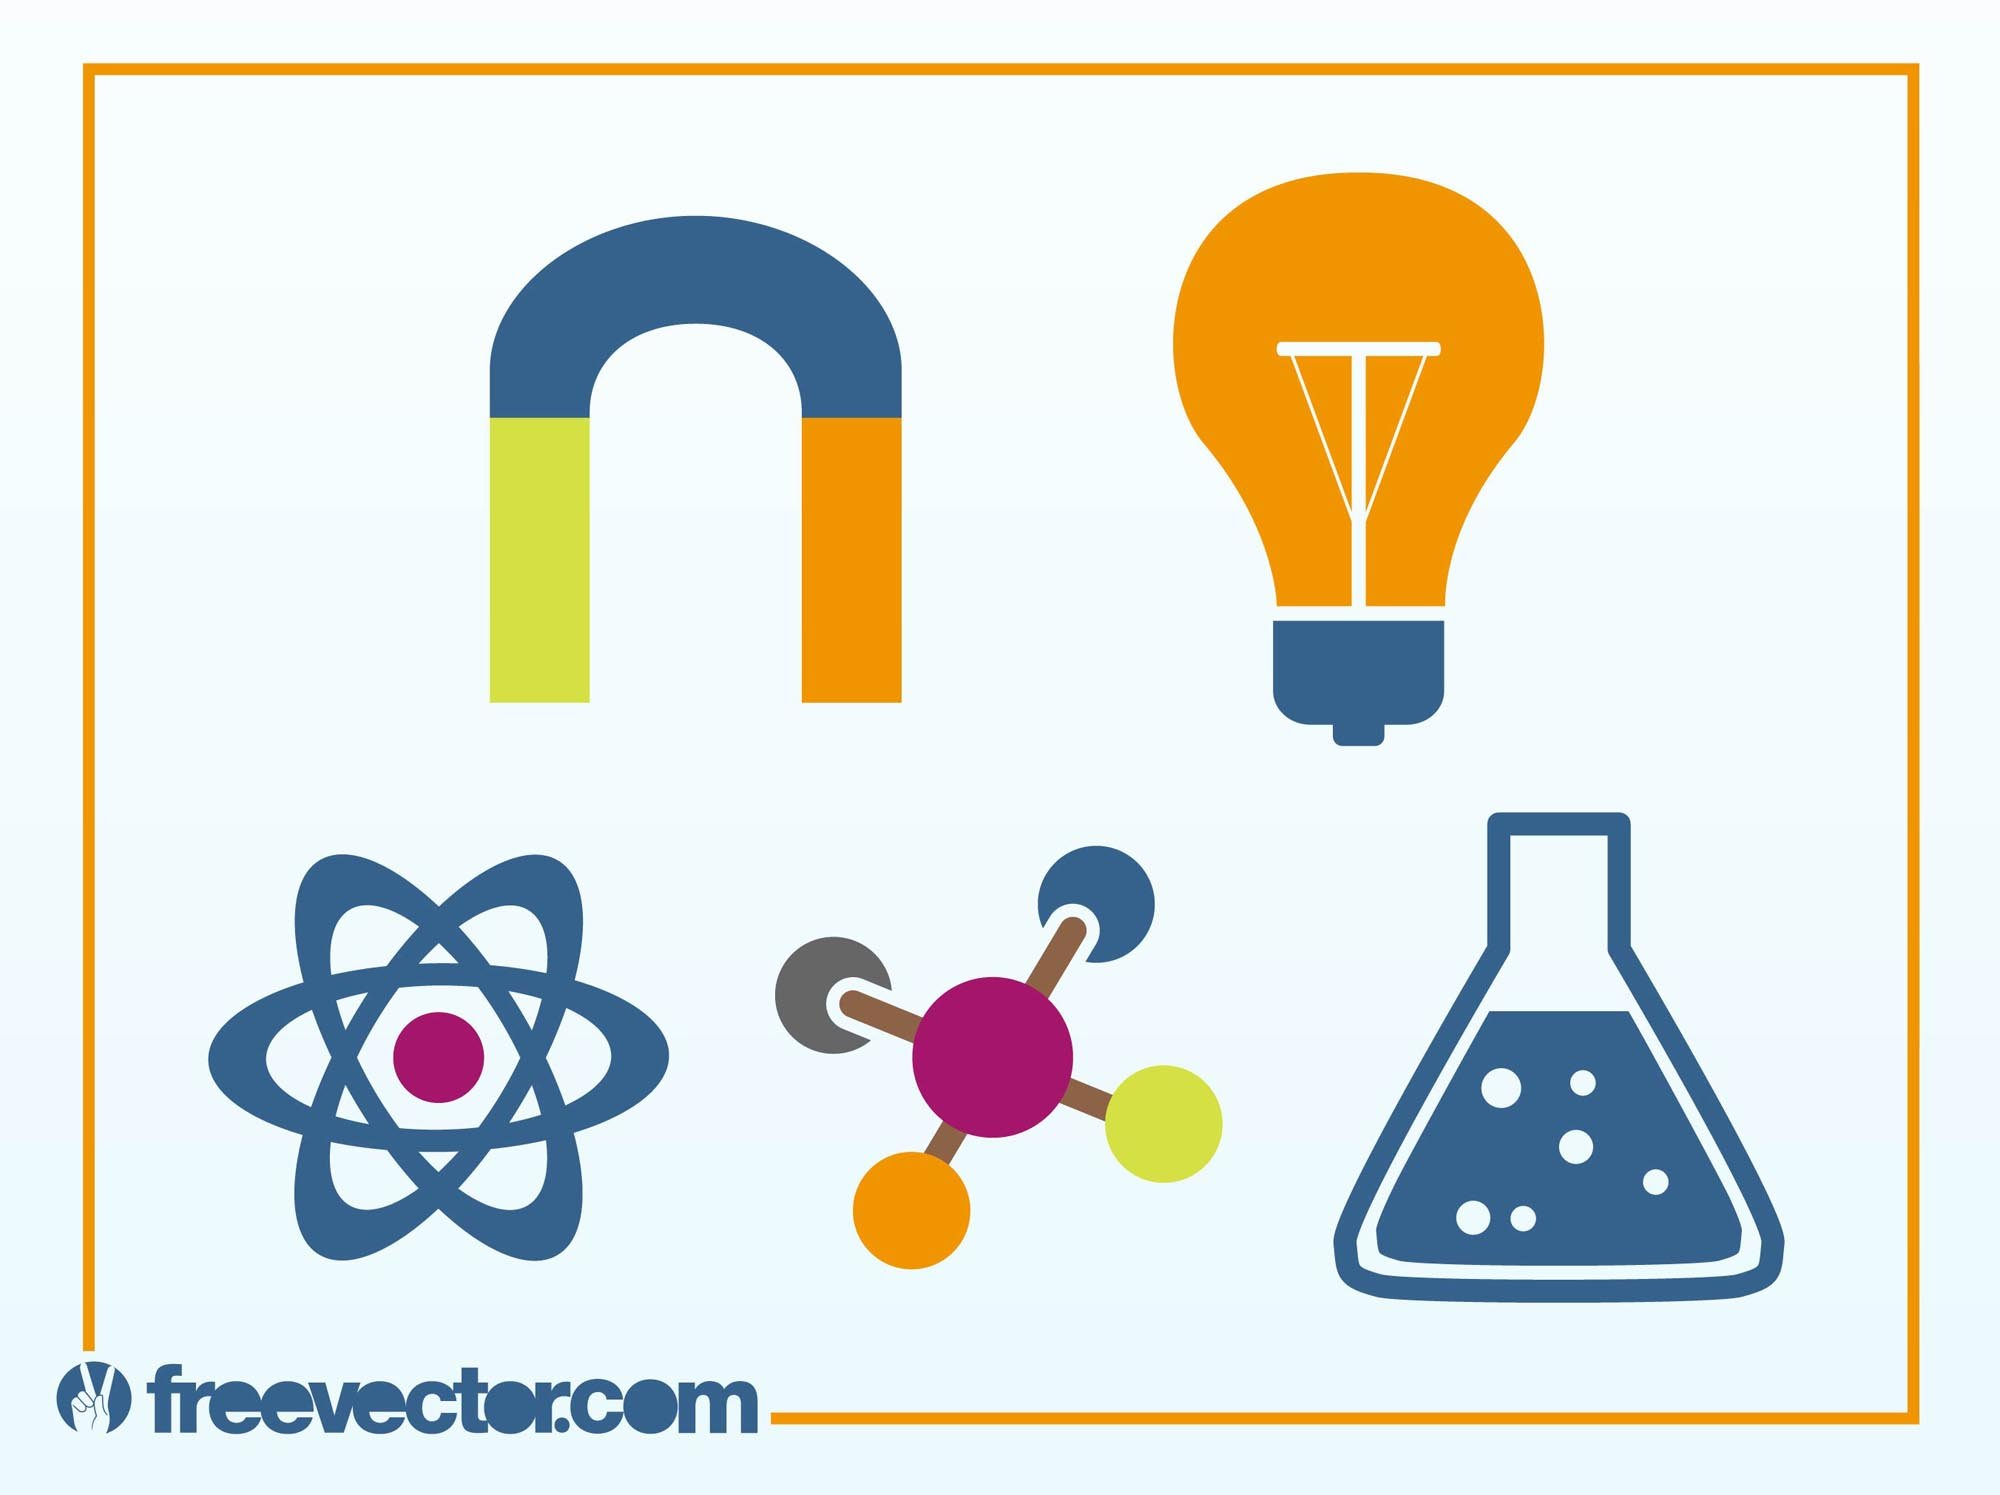 Science free vector download 1070 Free vector for